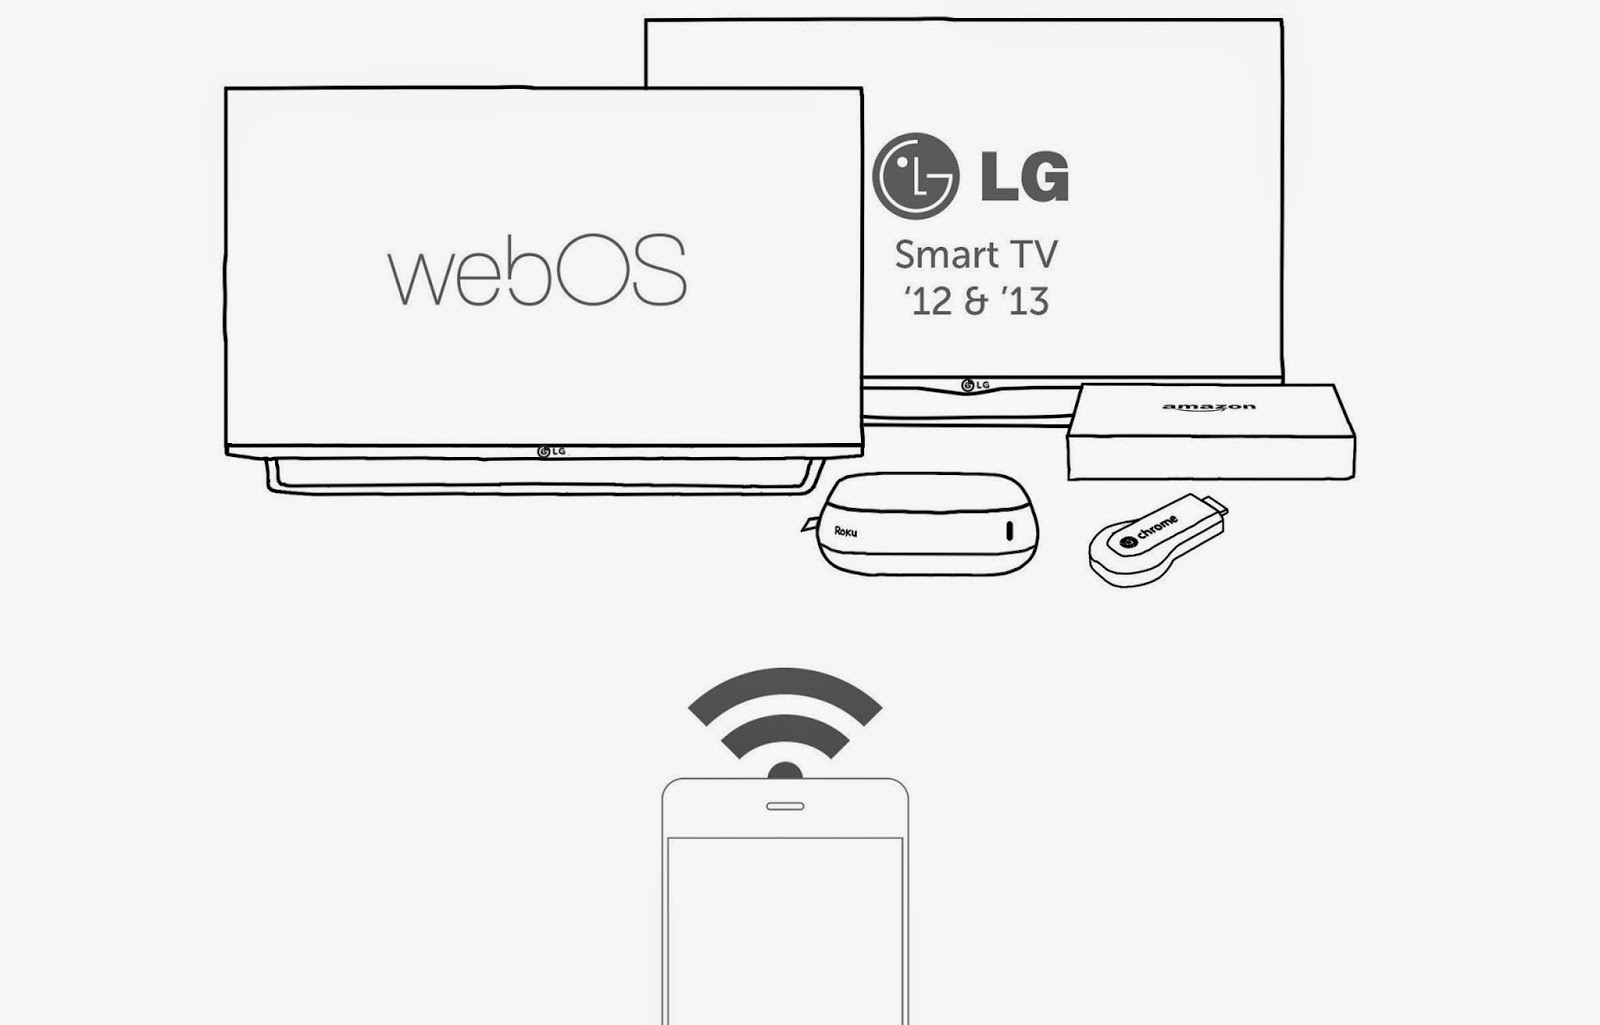 The Connect SDK currently supports webOS, Roku, Chromecast, Fire TV and older LG smart TVs. LG wants to add support for Apple TV and Samsung devices soon